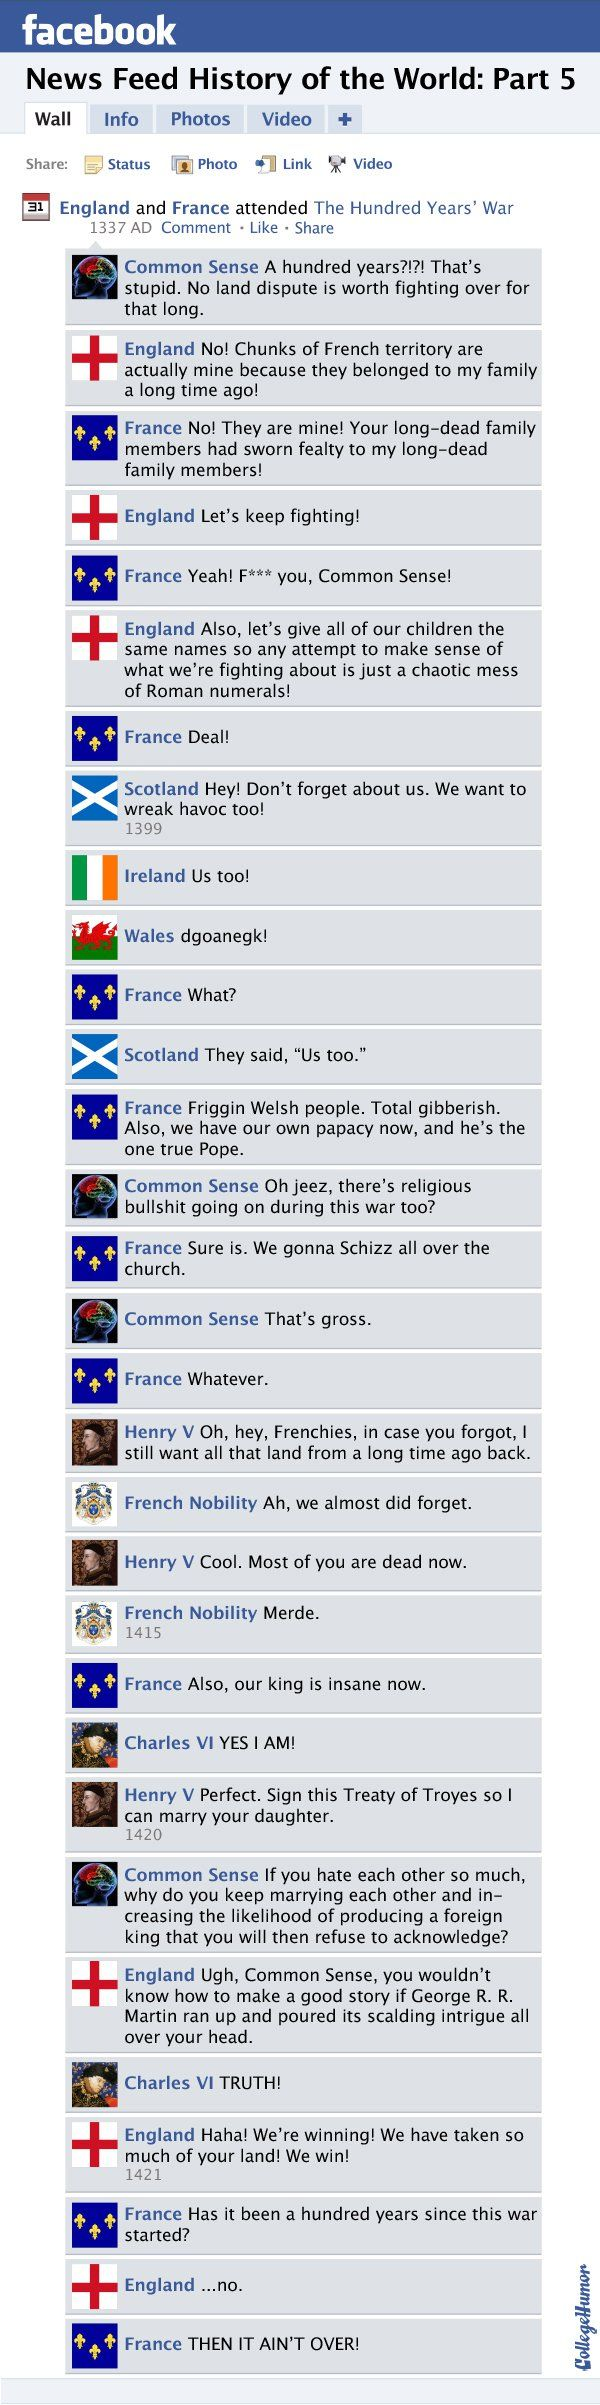 Facebook News Feed History of the World: Hundred Years' War to the New World - CollegeHumor Post